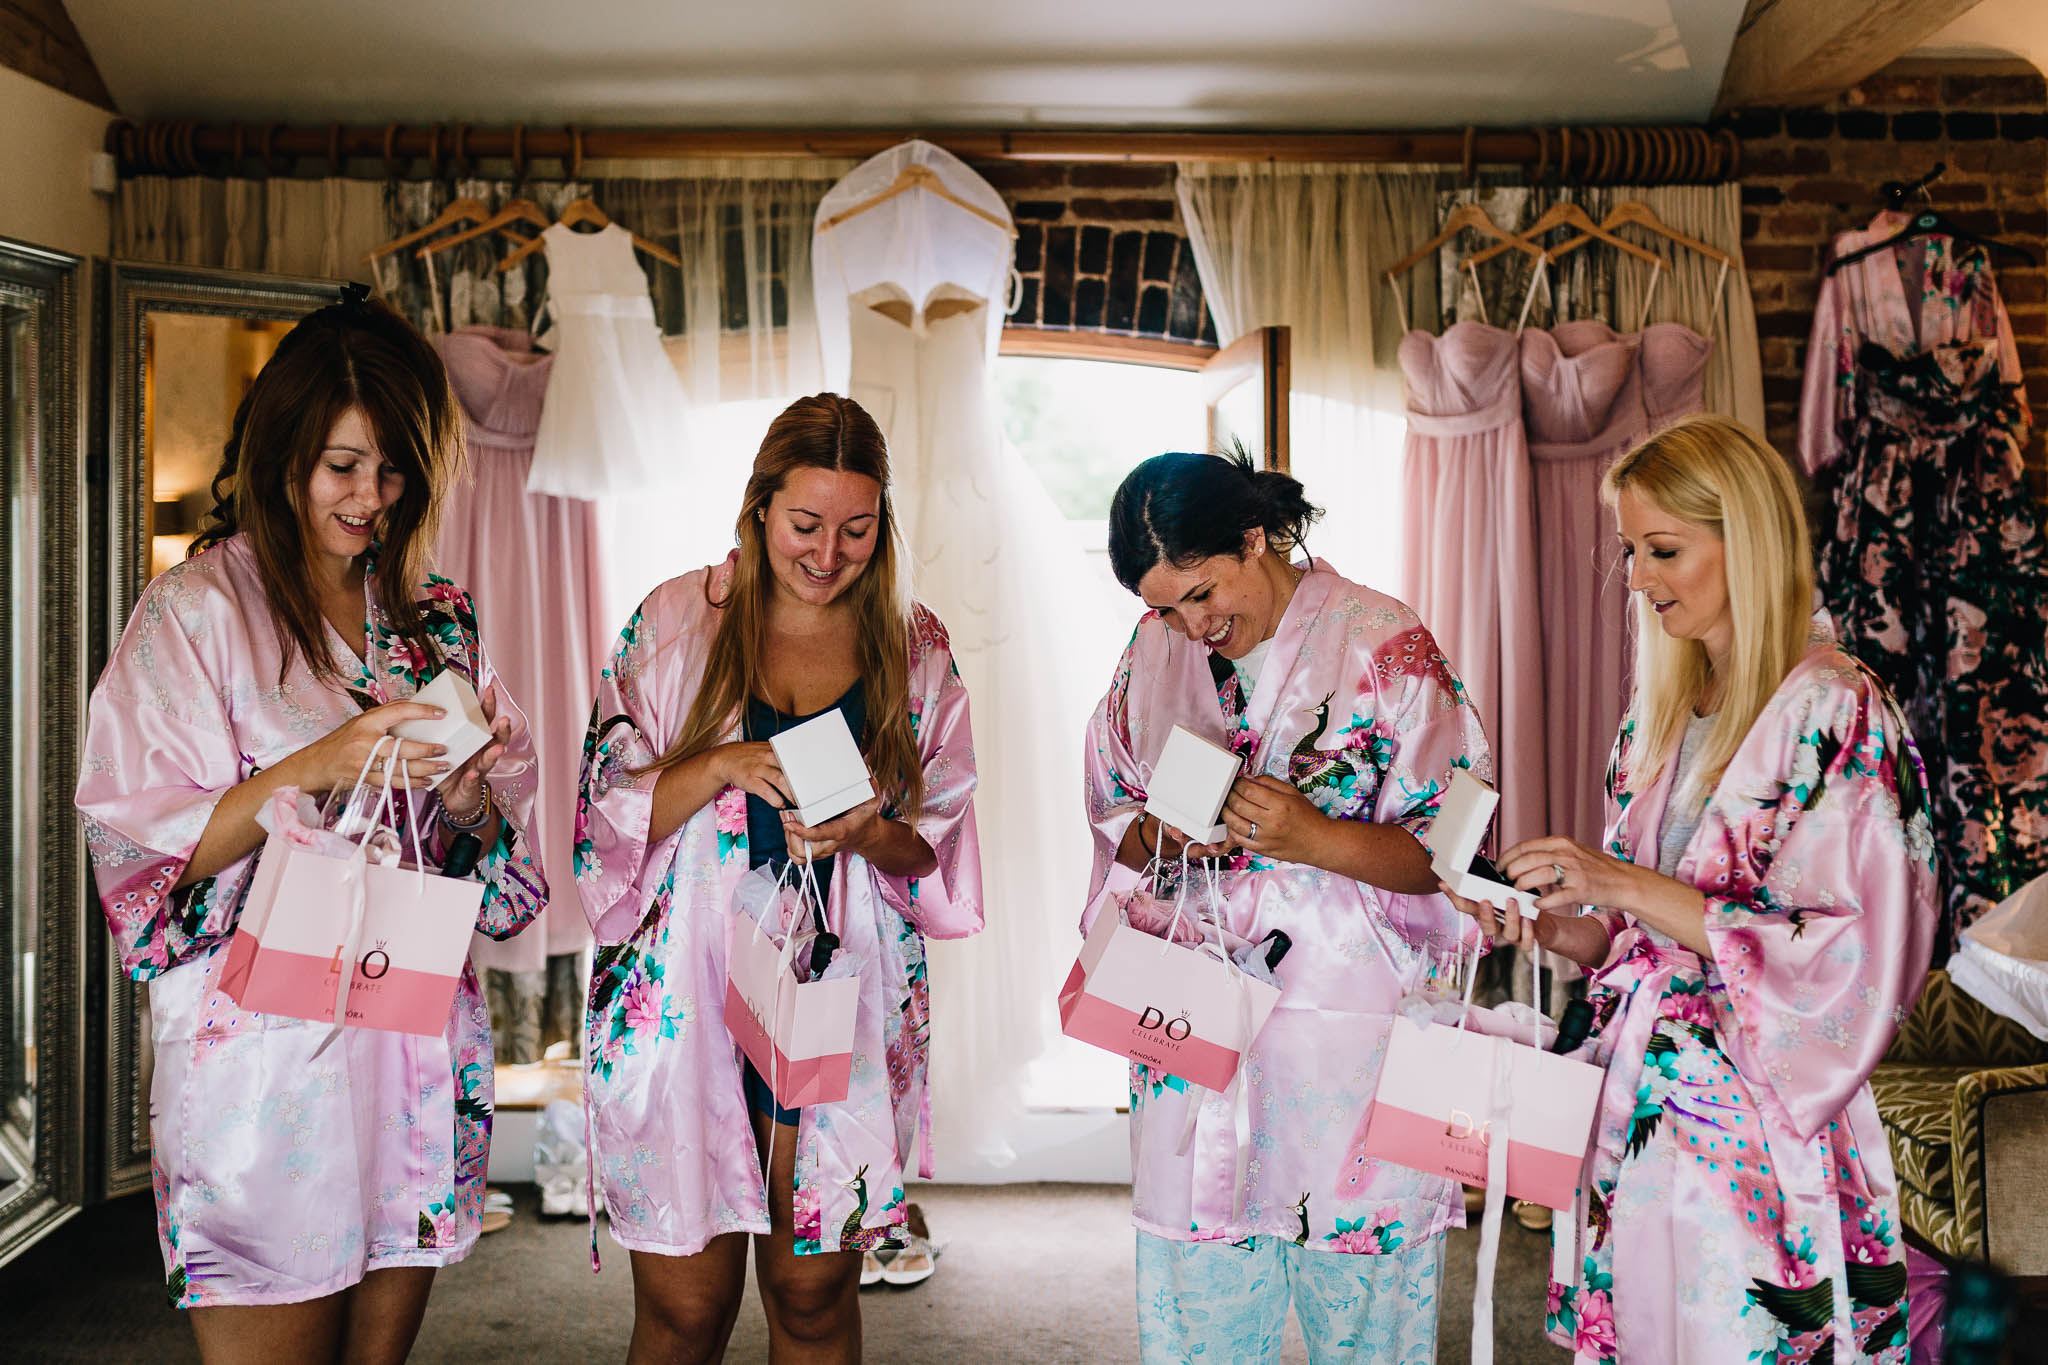 BRIDESMAIDS IN ROBES OPENING WEDDING GIFTS